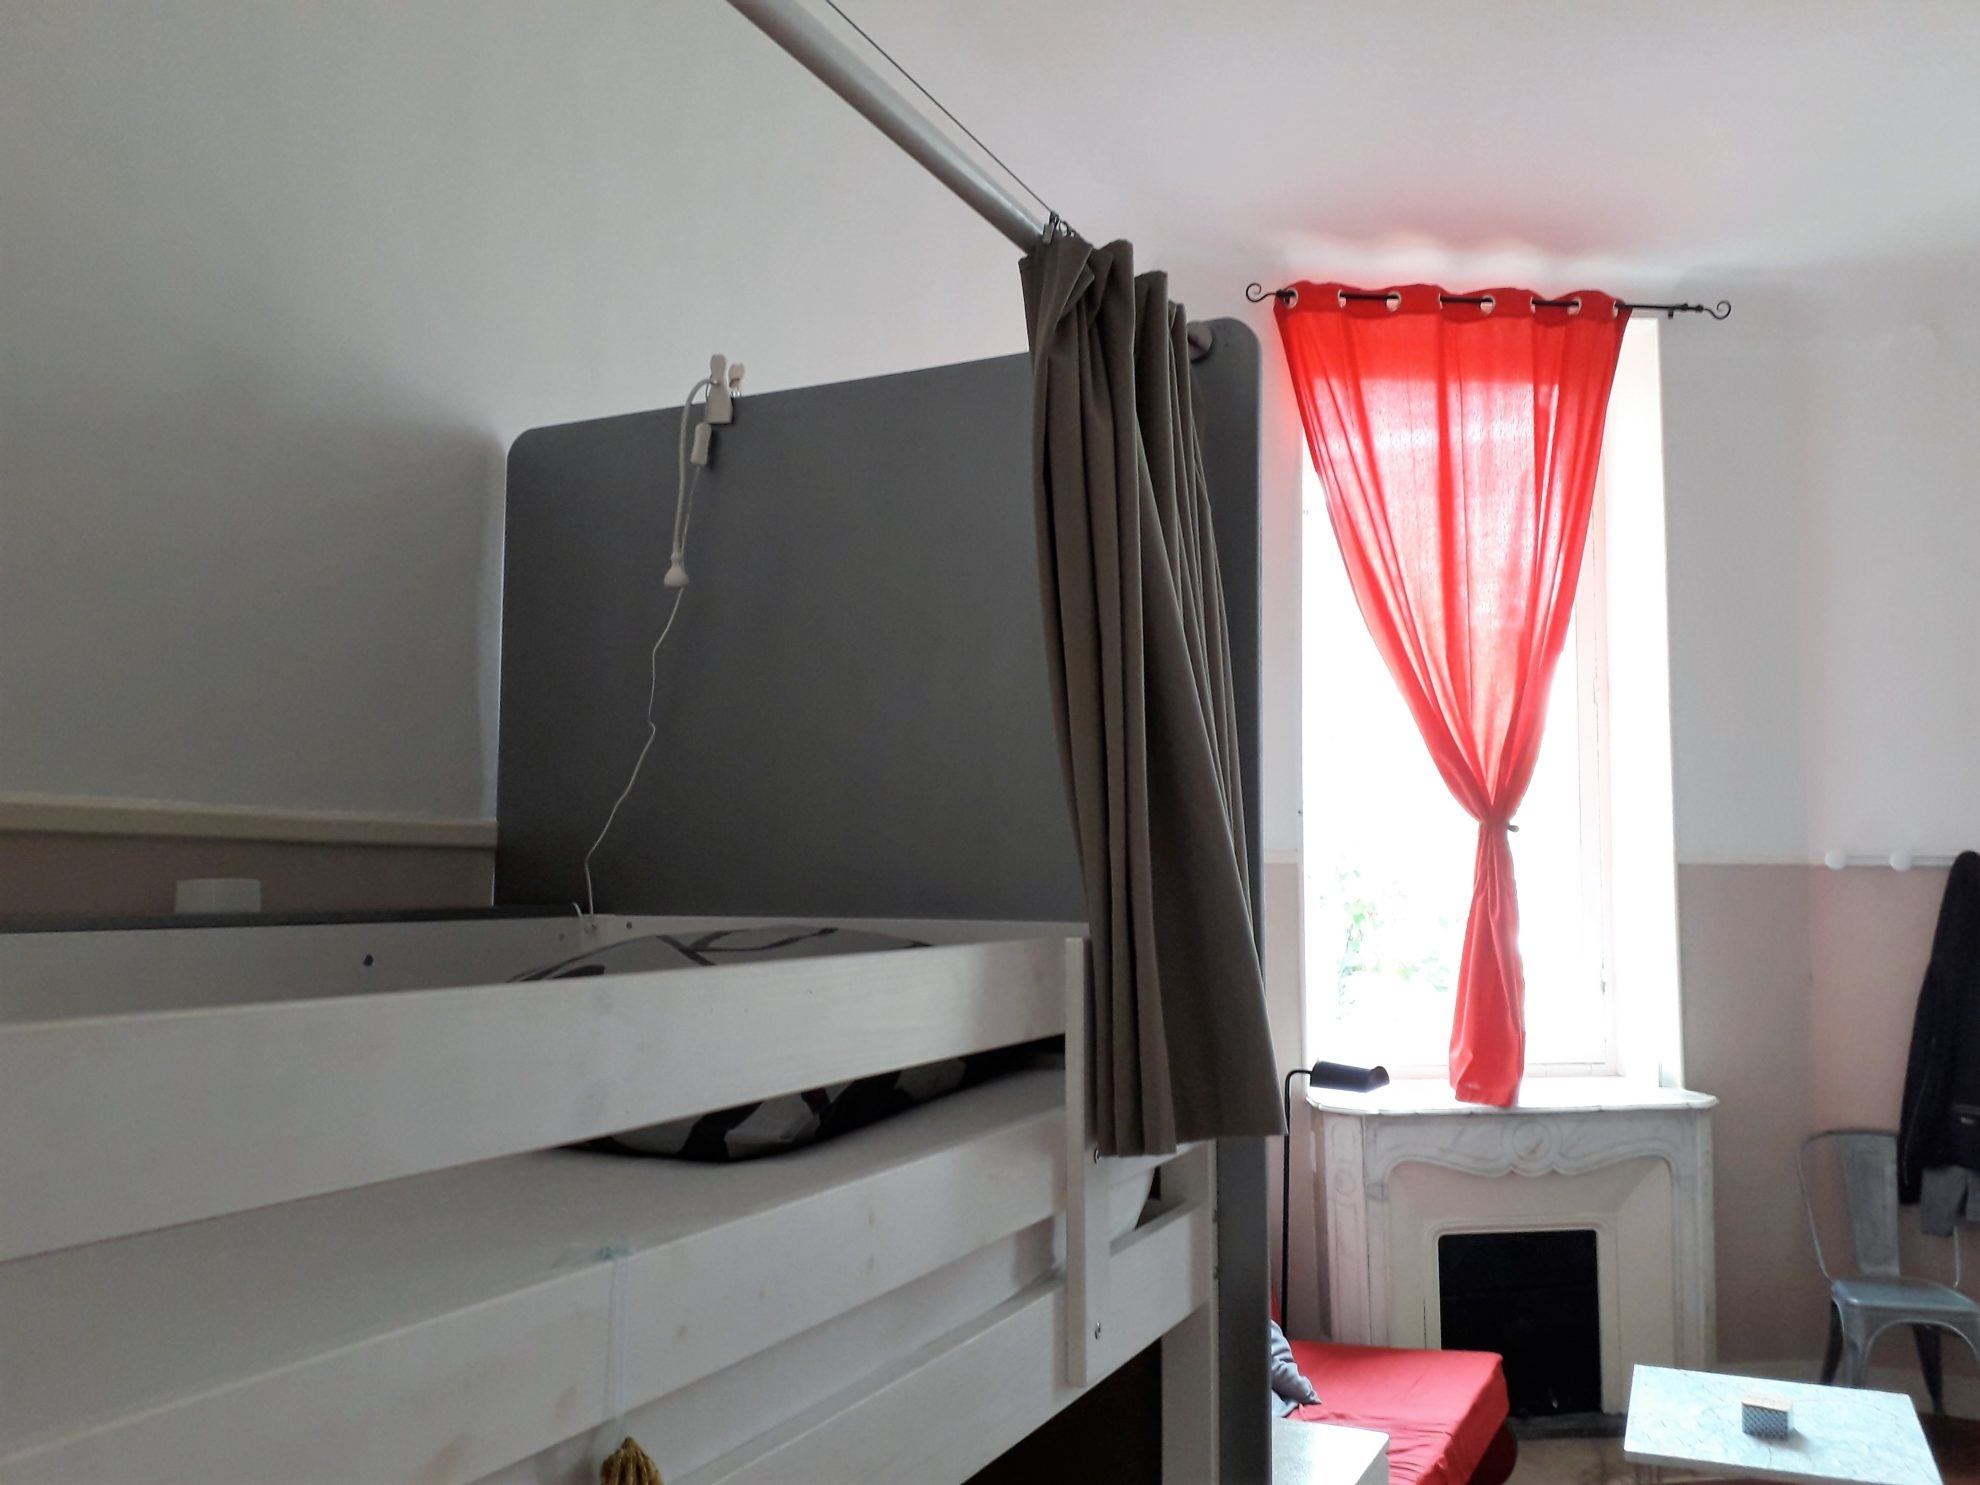 dorm-mixte-4-1-e1537101445653